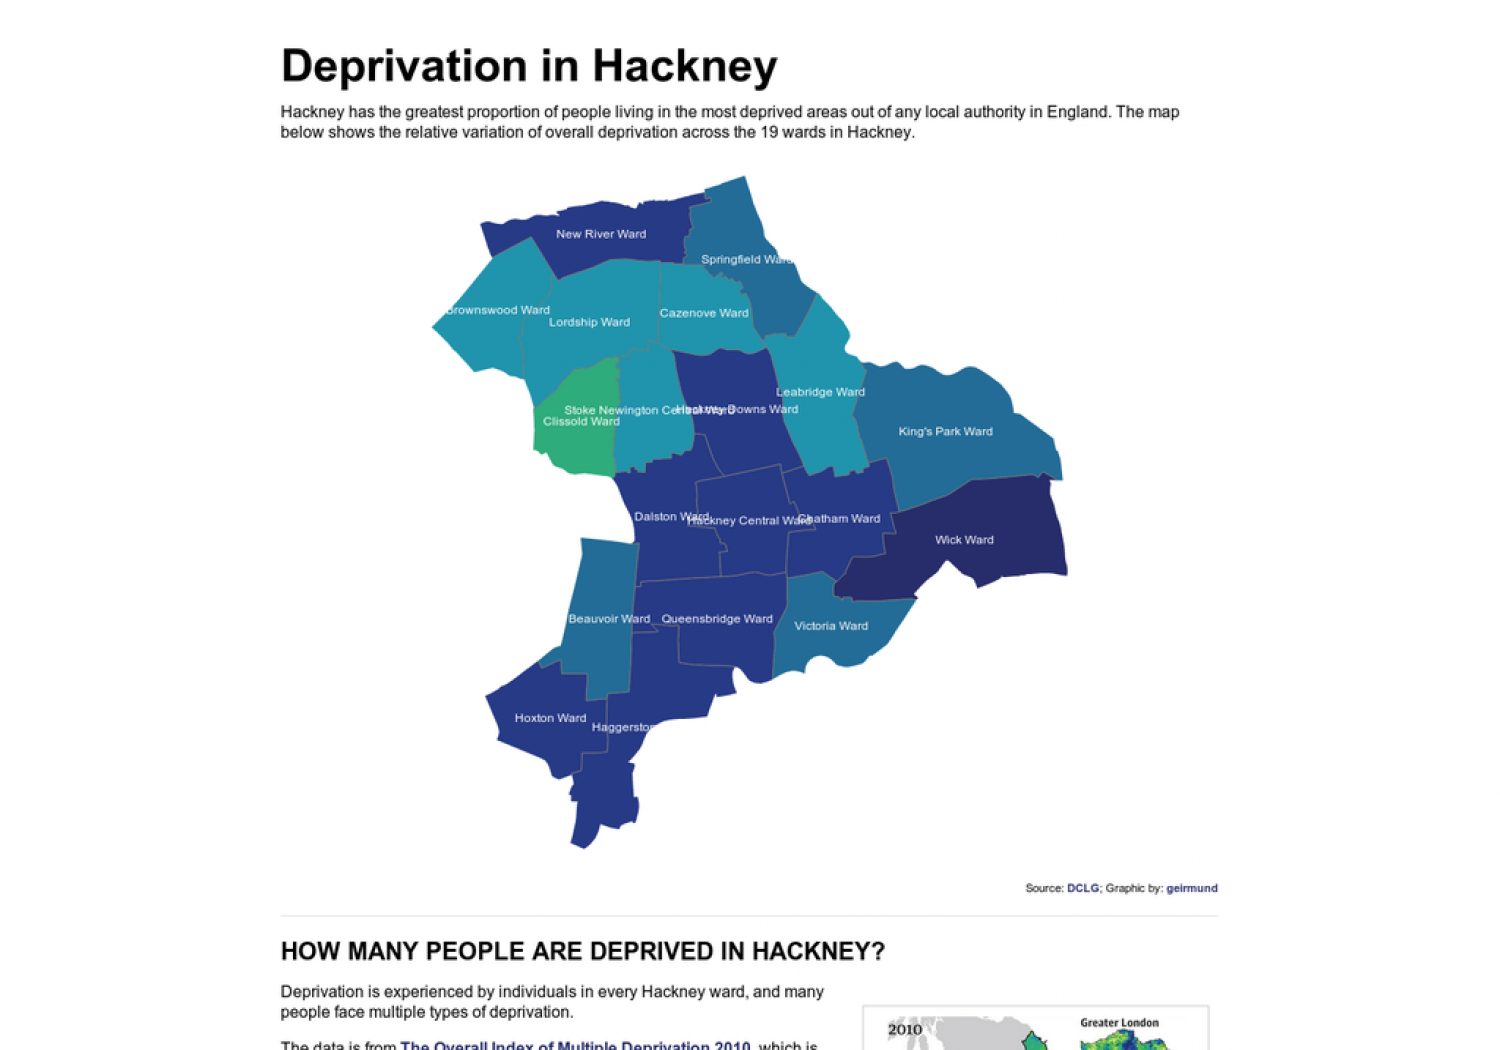 Deprivation in Hackney Infographic